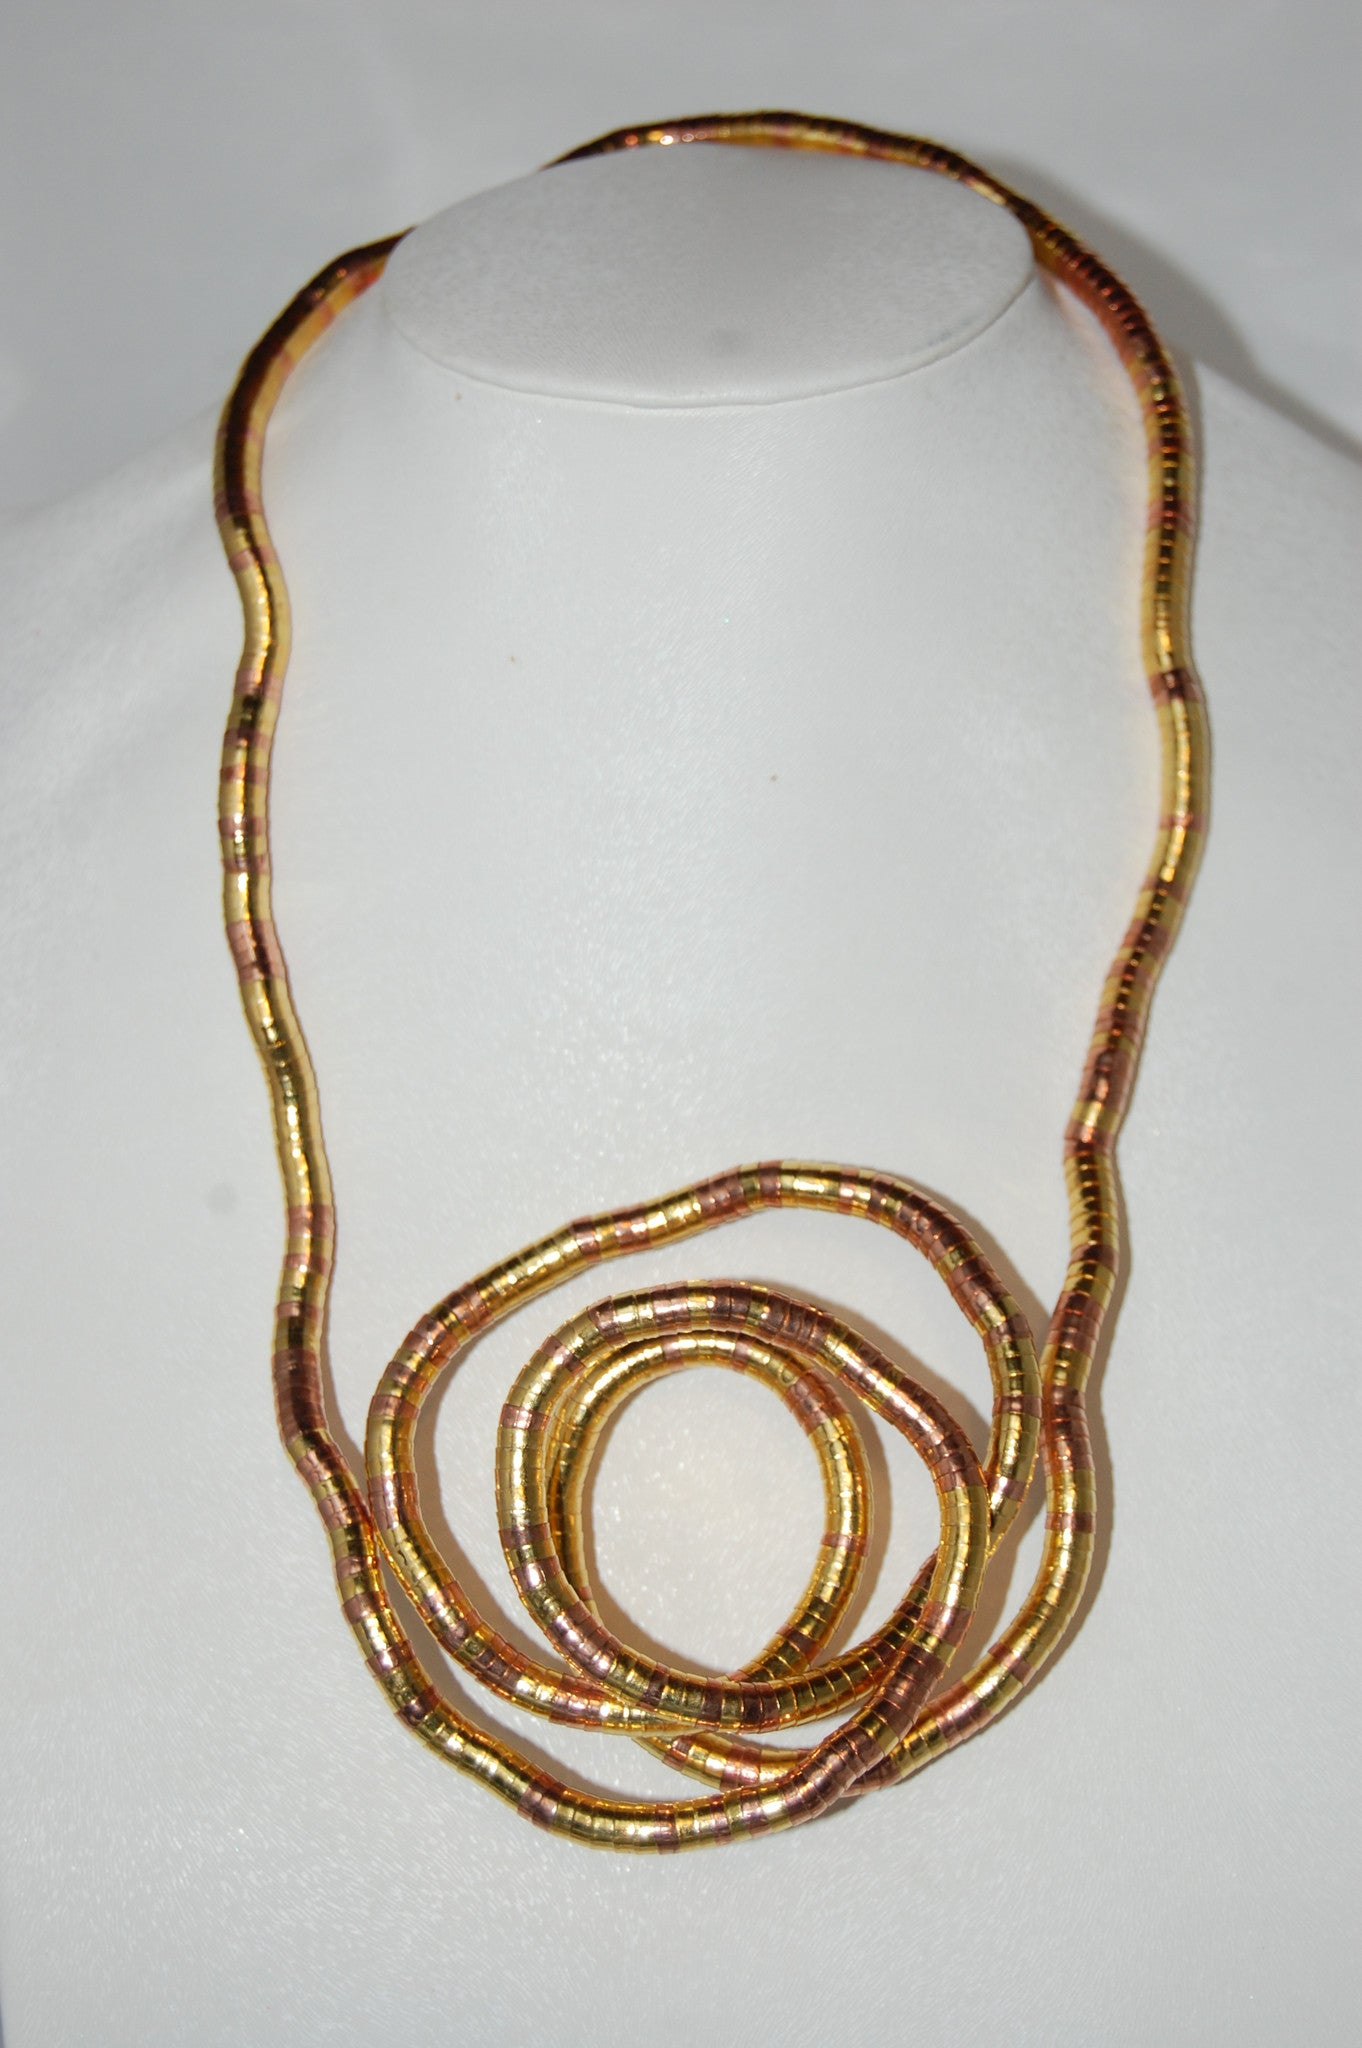 Gold and Rose Gold, 36 inches long